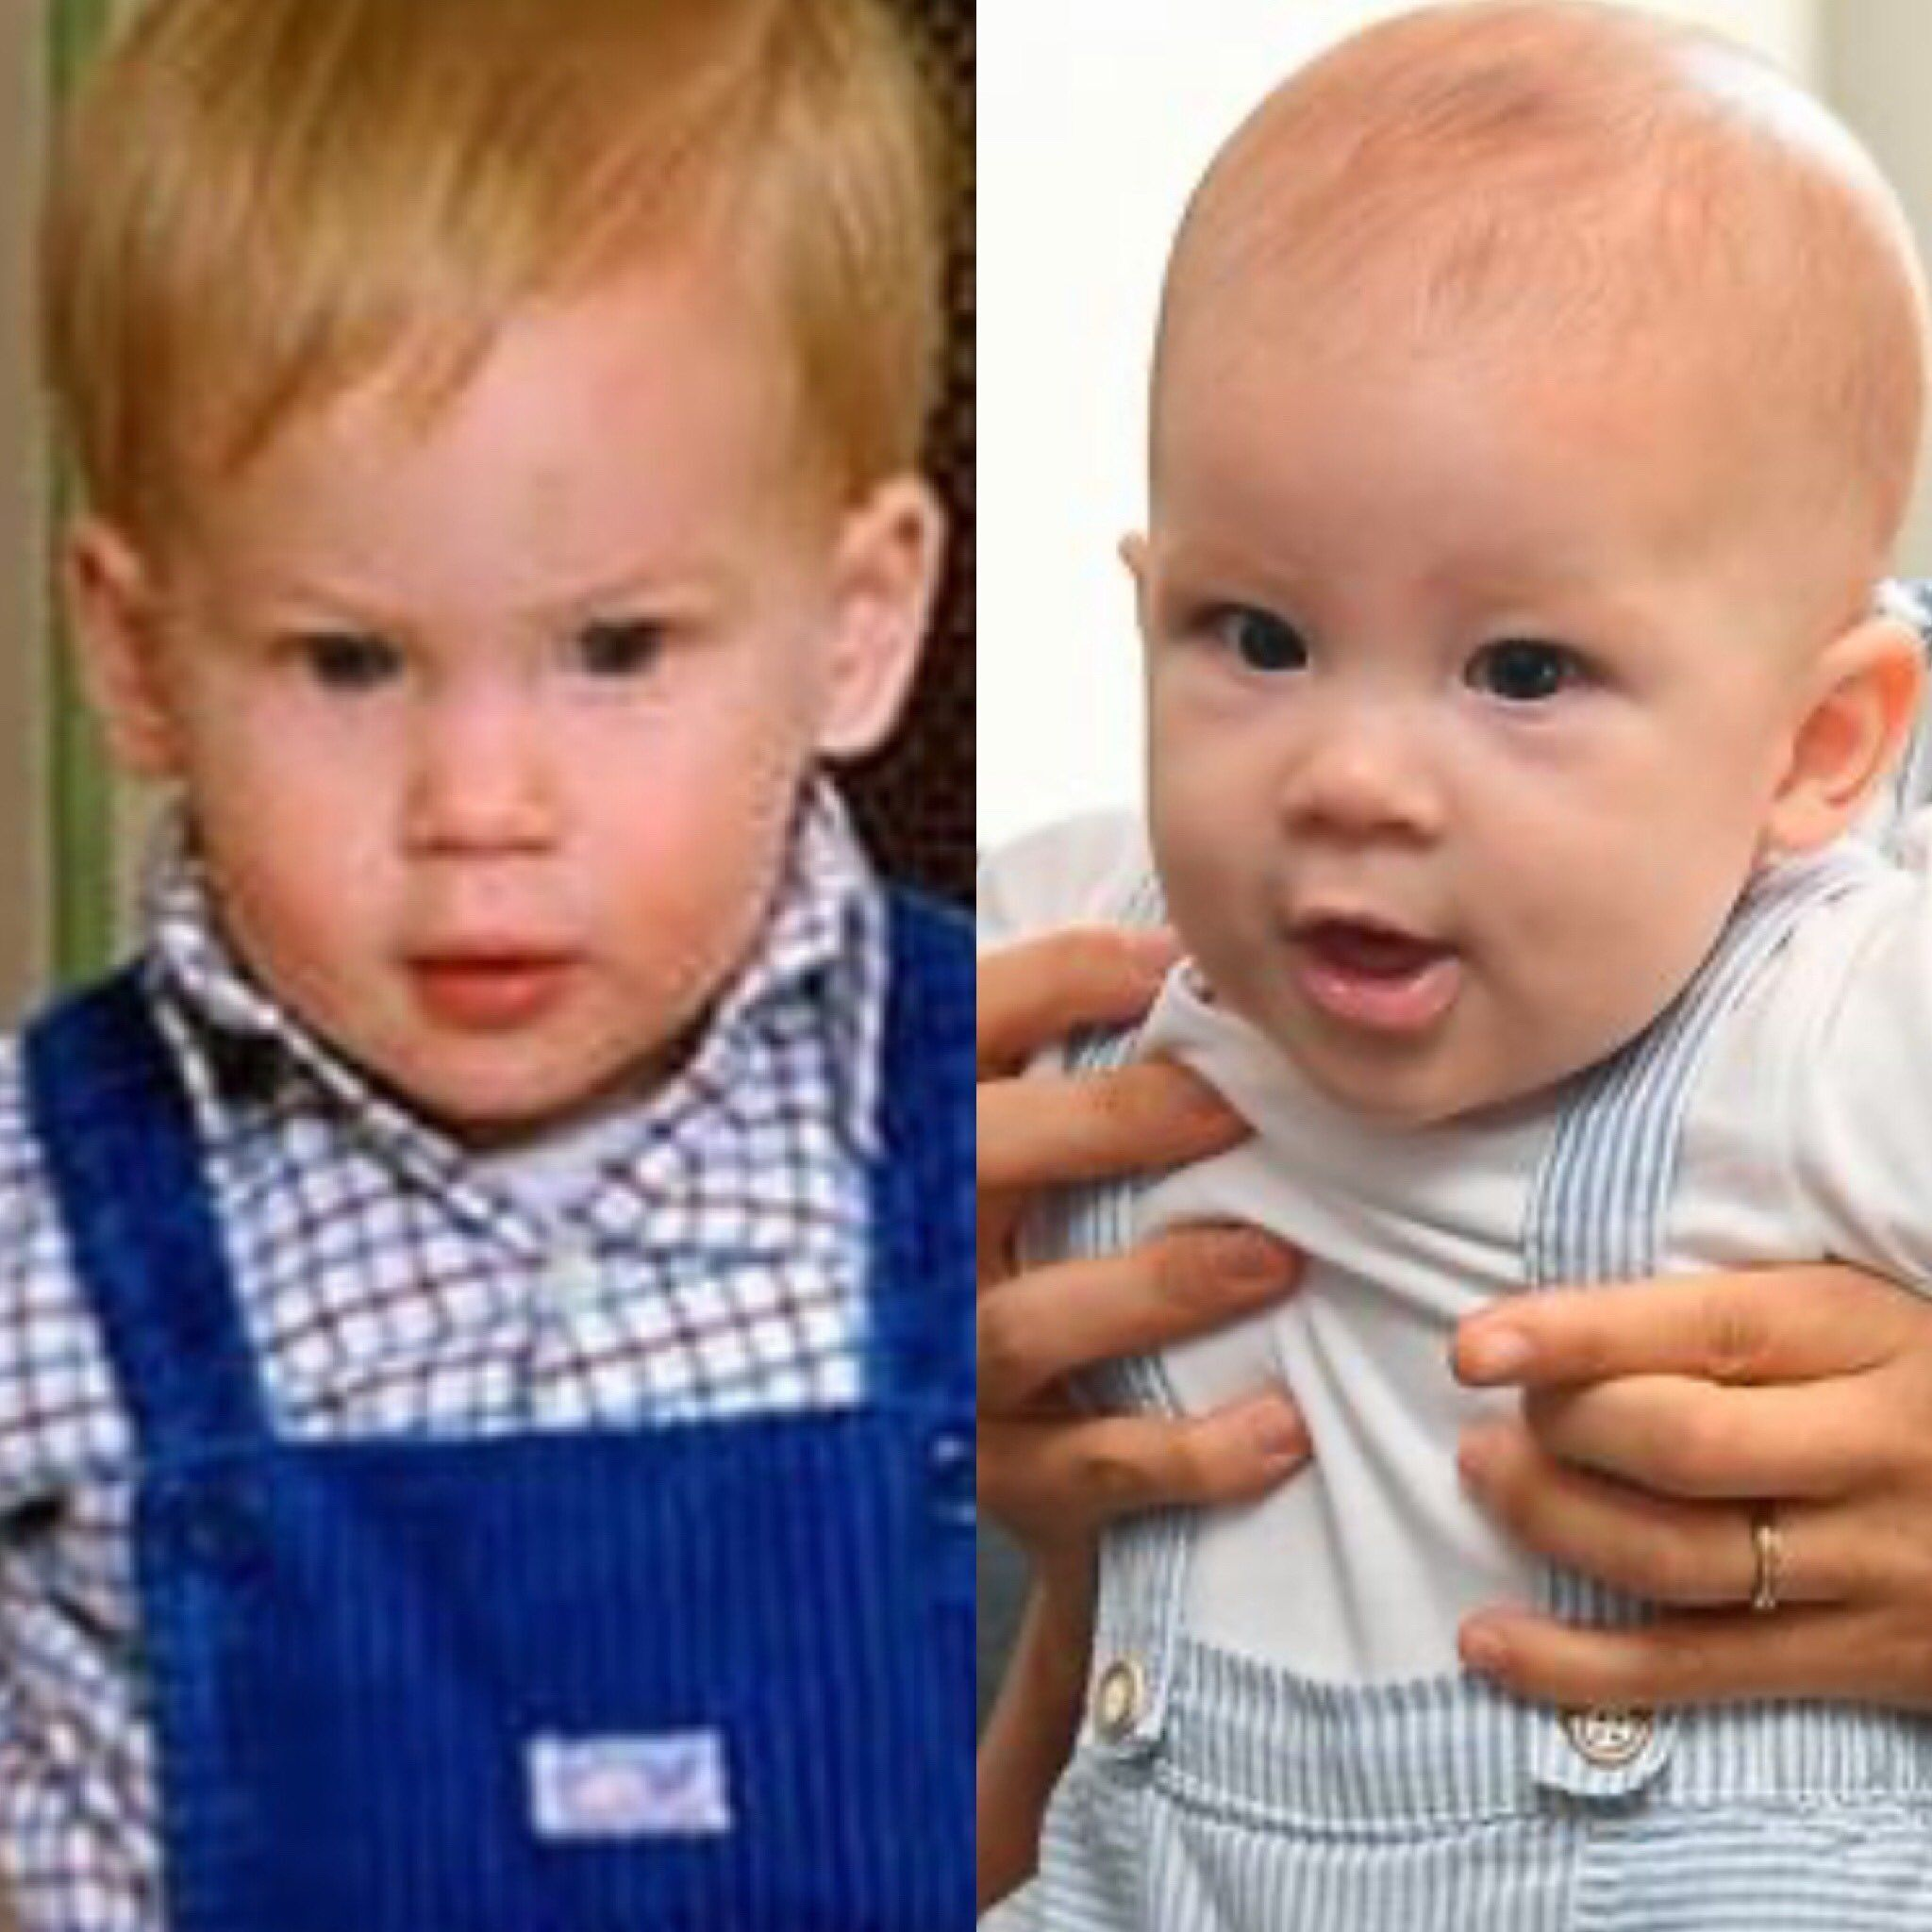 pin by angela flemming may on baby archie in 2020 prince harry and megan prince harry and meghan harry and meghan pinterest